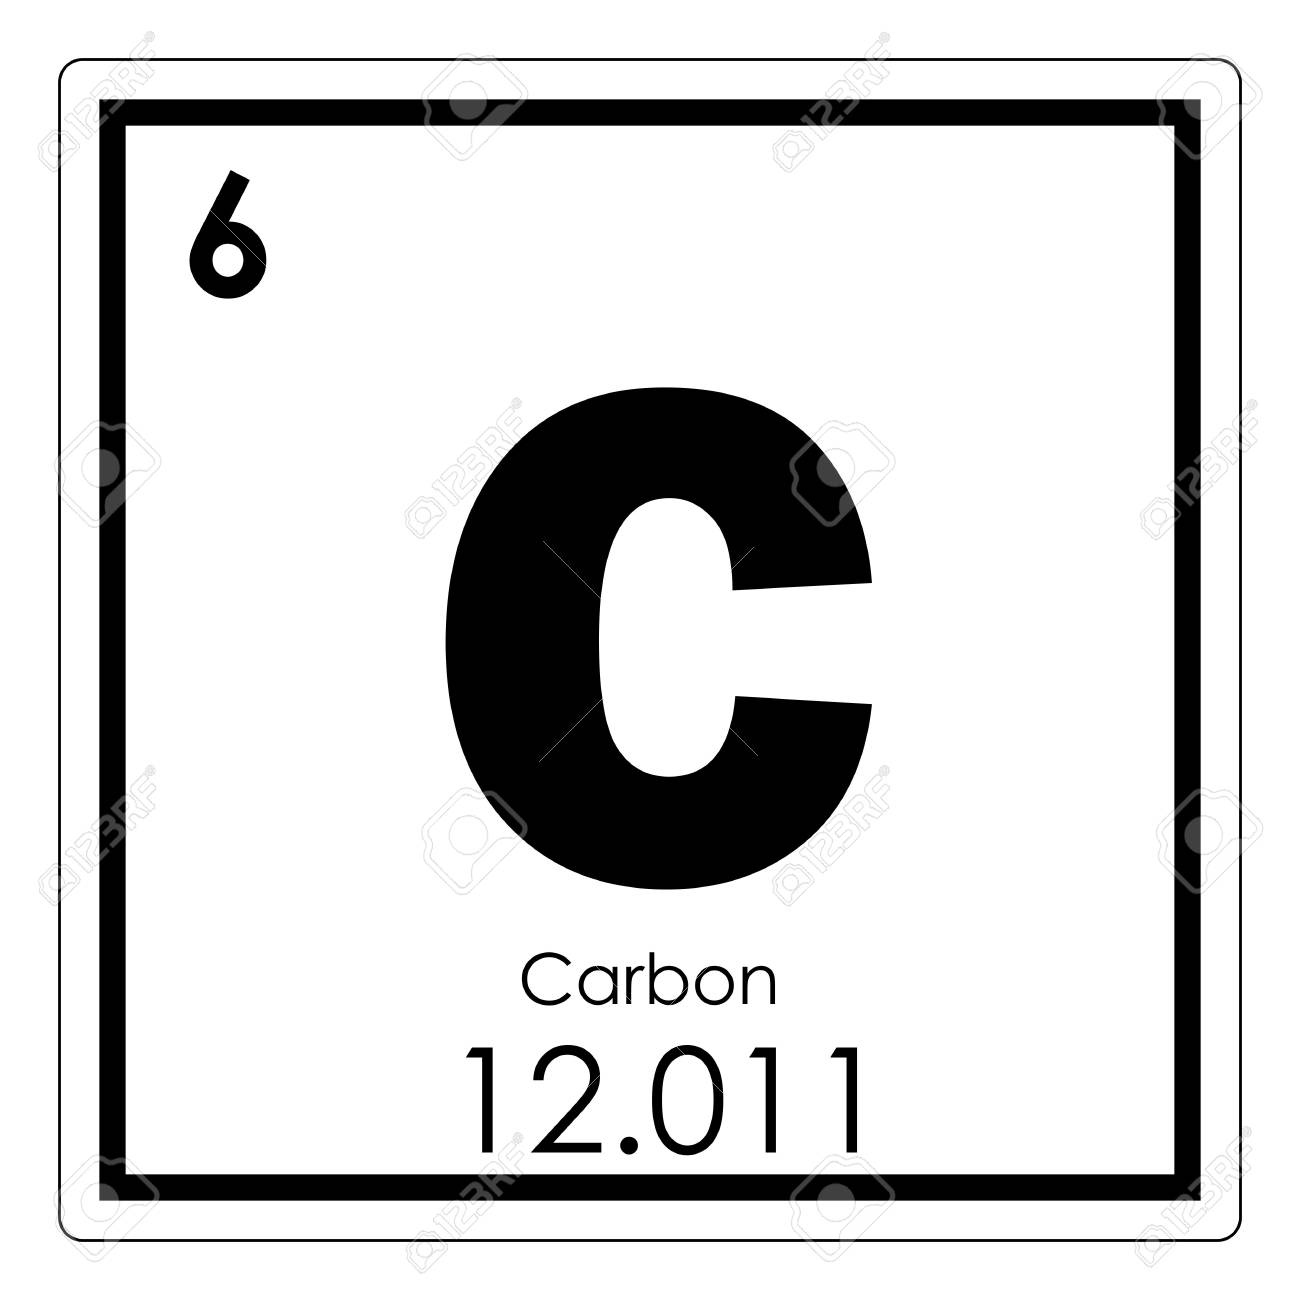 Carbon chemical element periodic table science symbol stock photo carbon chemical element periodic table science symbol stock photo 93637646 urtaz Choice Image